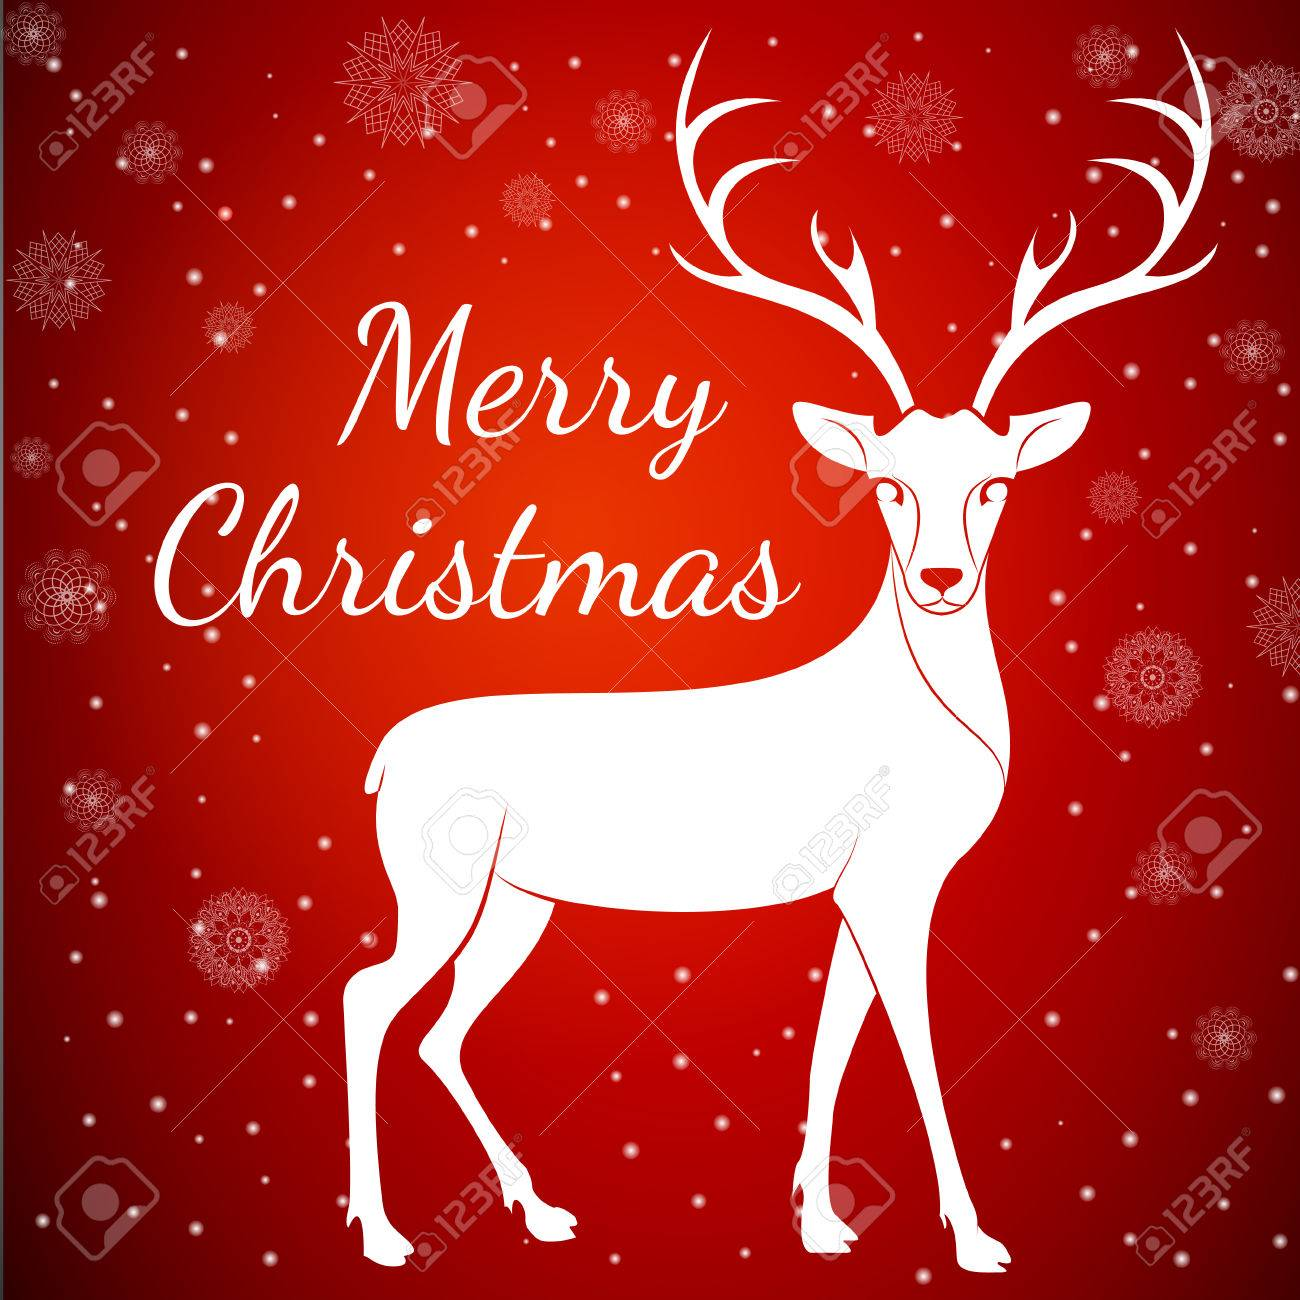 Merry Christmas Reindeer On Snowflakes Dots Background.Graceful ...